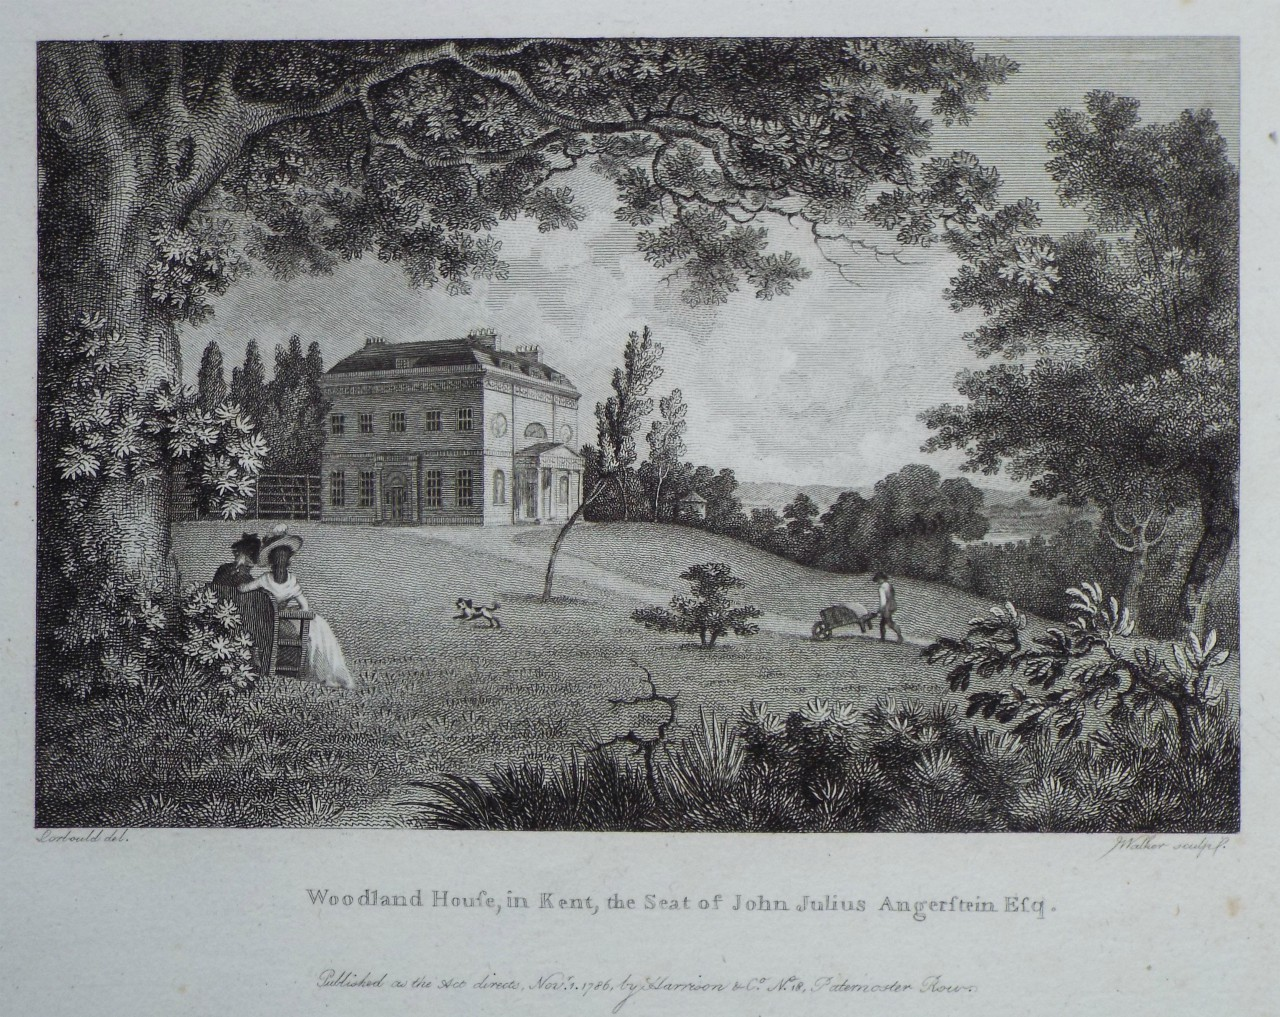 Print - Woodland House, in Kent, the Seat of John Julius Angerstein Esq. -